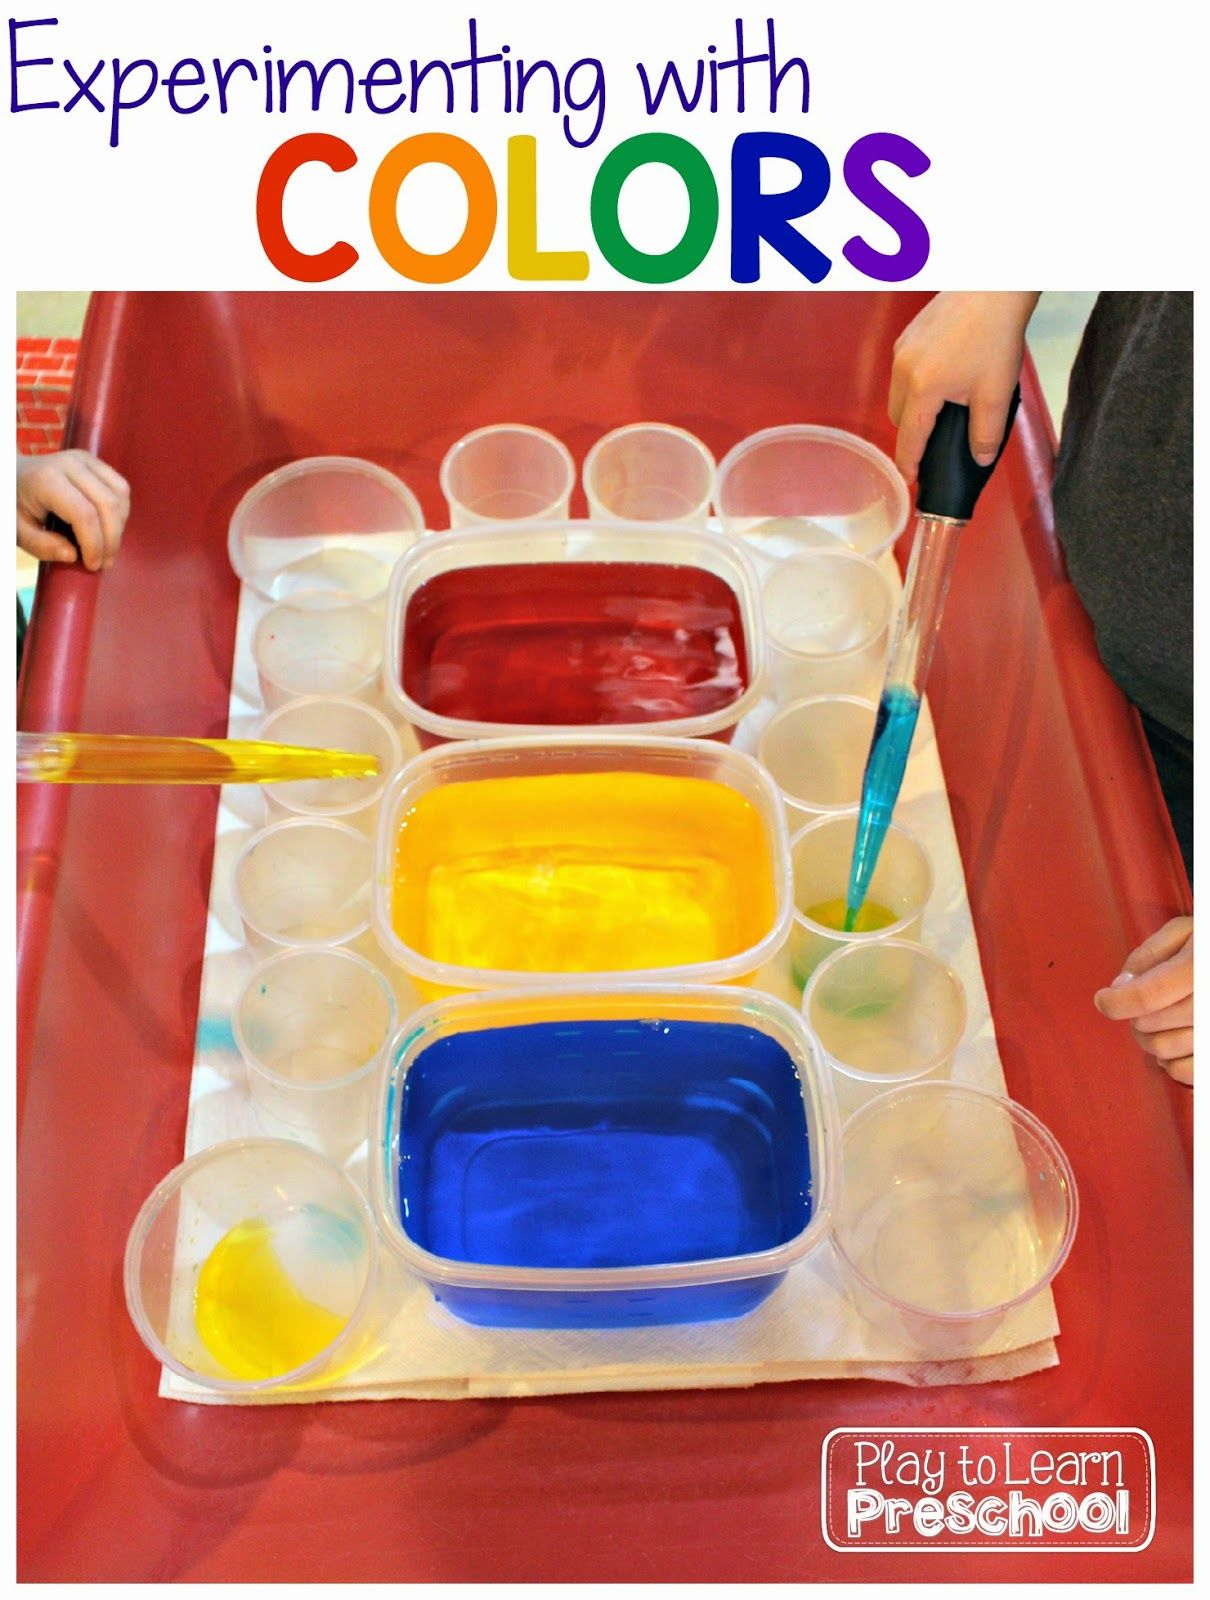 color theory experiments play to learn preschool blog